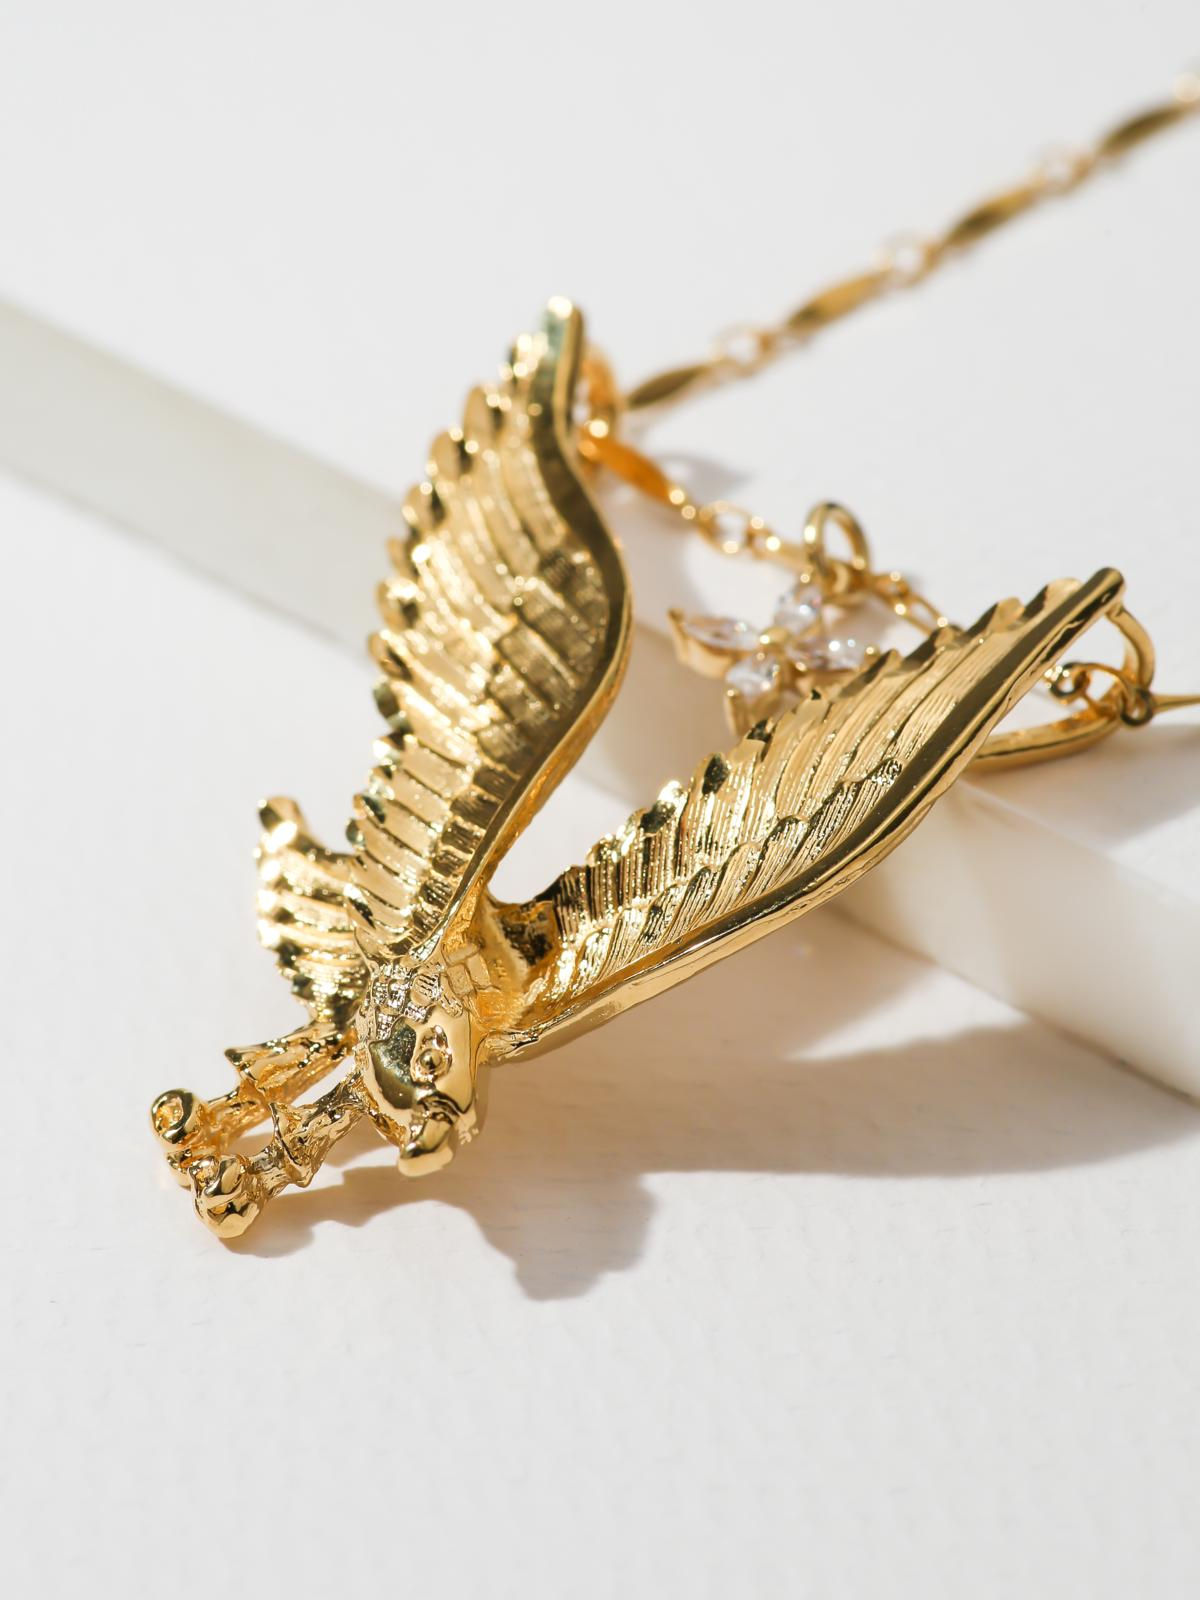 The Lynx Eagle & Star Necklace